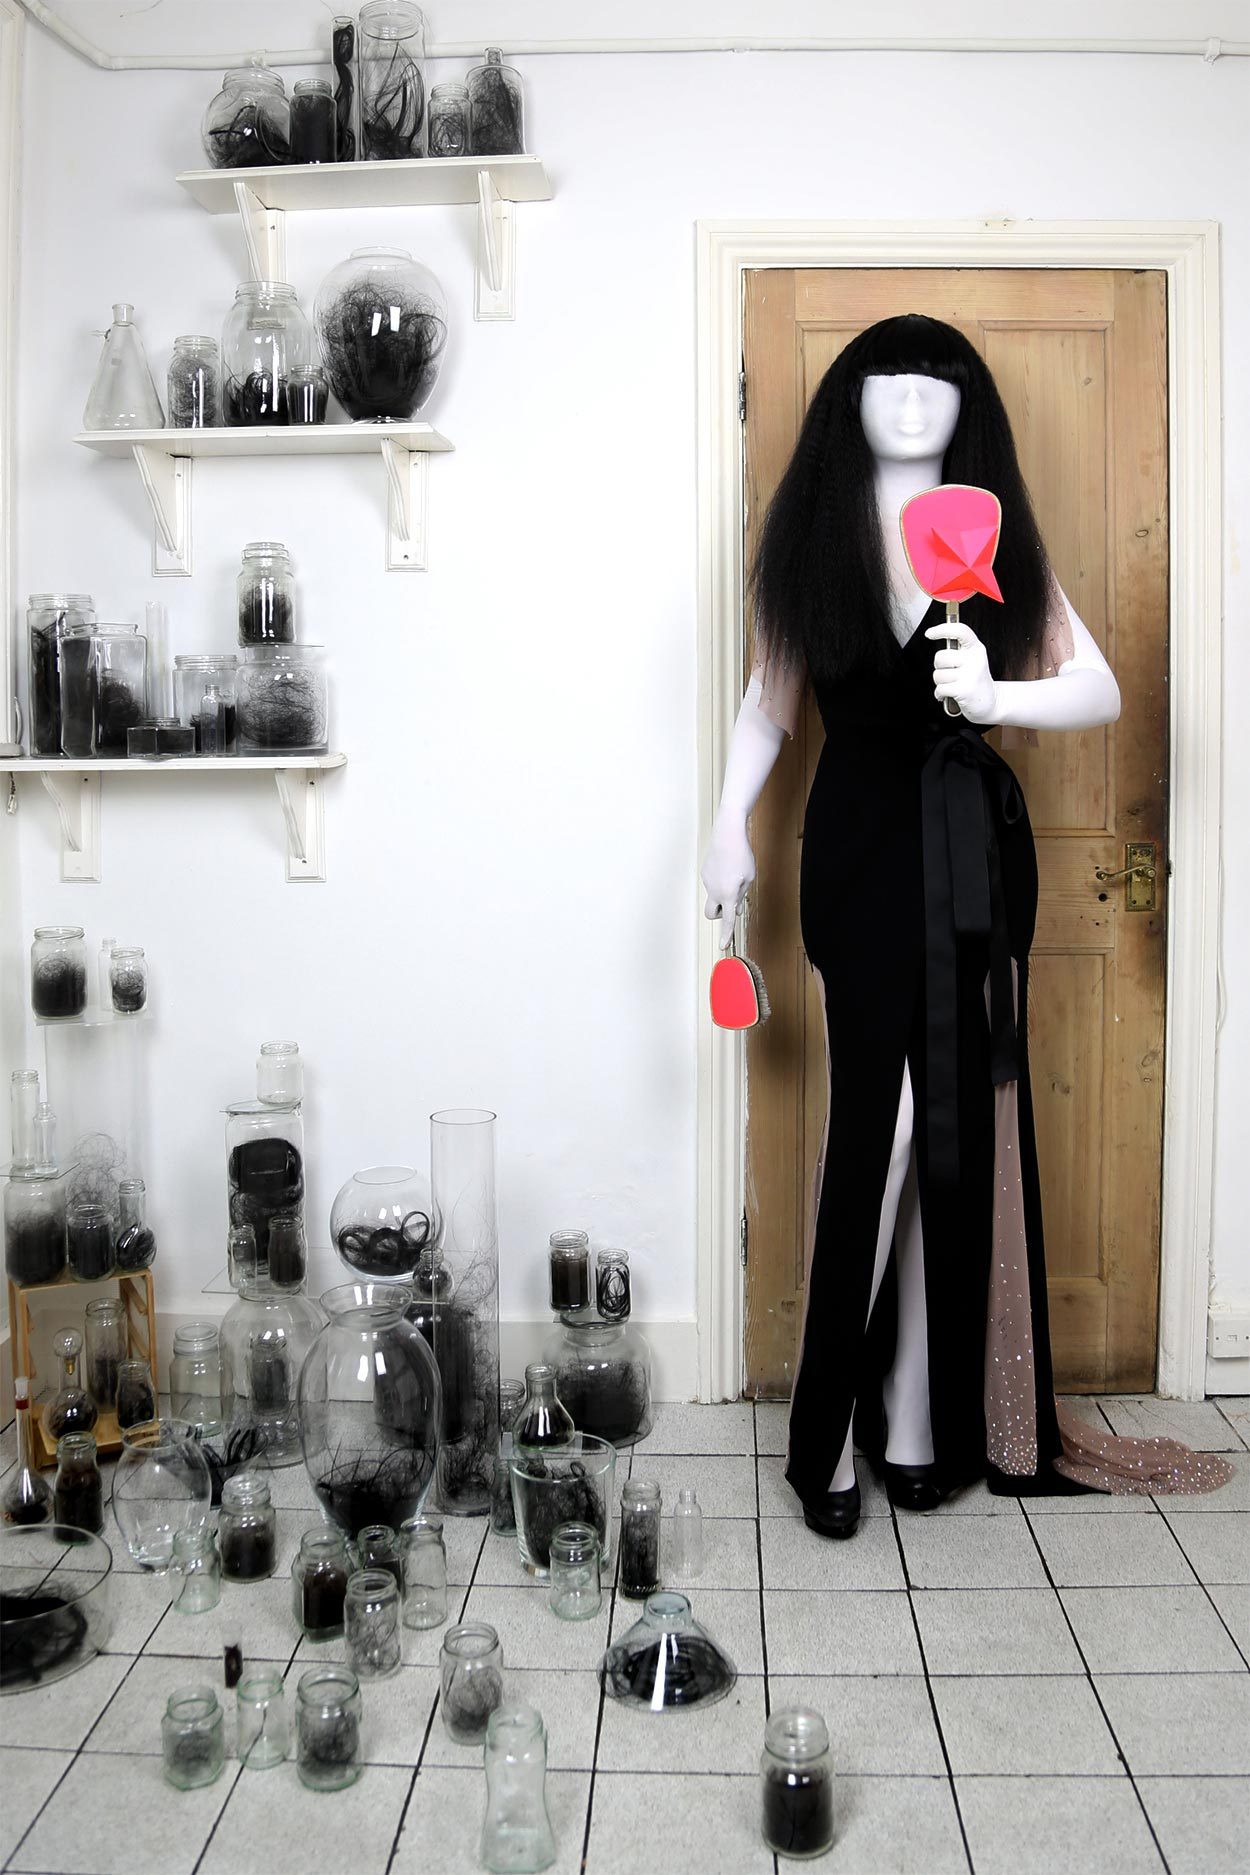 A woman wearing an Old Hollywood style gown made by Milkshaken.net, is holding a hand mirror and hairbrush, surrounded by jars of her own hair.